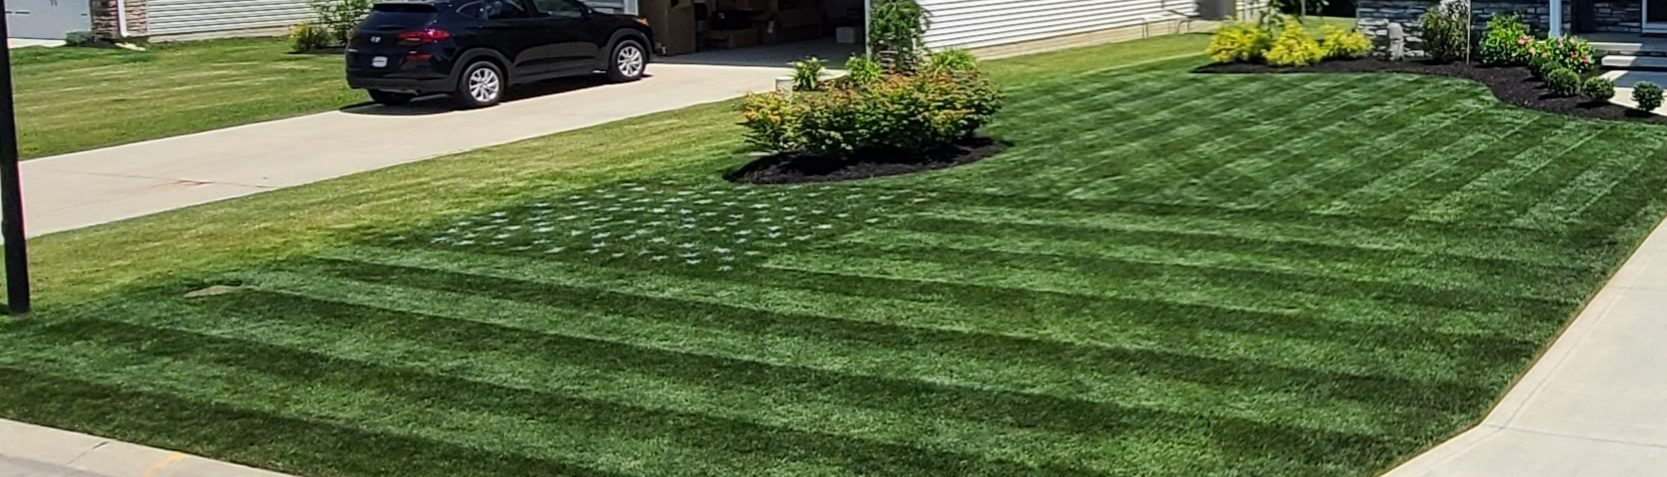 October Lawn care